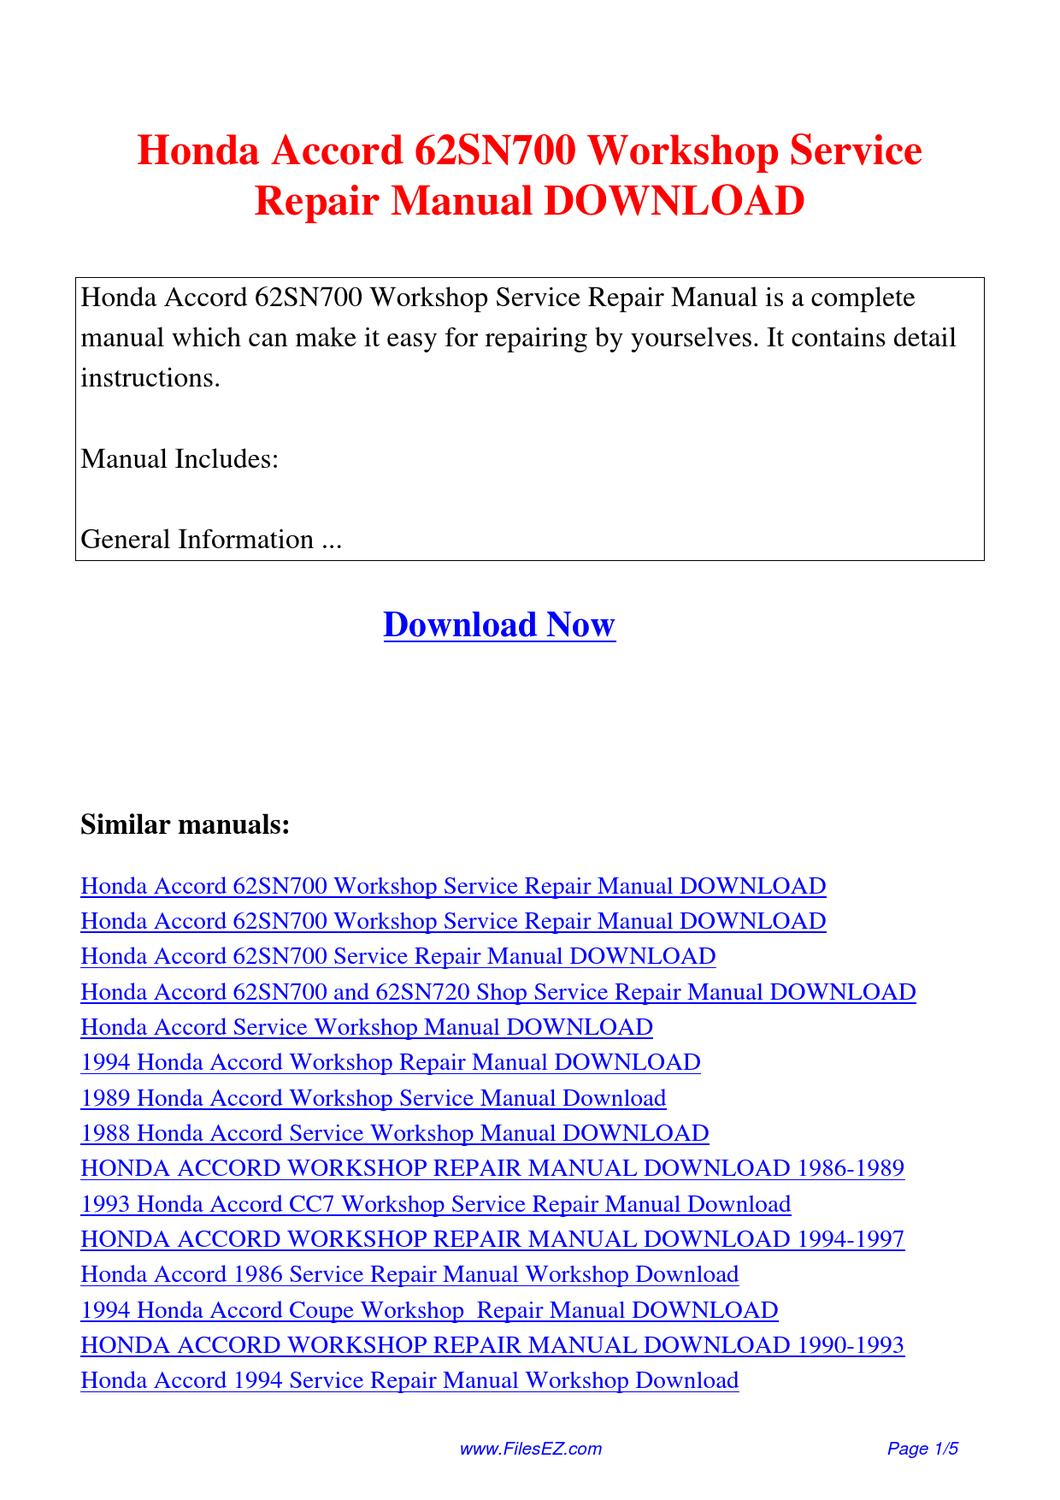 honda accord 62sn700 workshop service repair manual by jingle wong rh issuu com 1998 honda accord service manual pdf 1988 honda accord lxi service manual